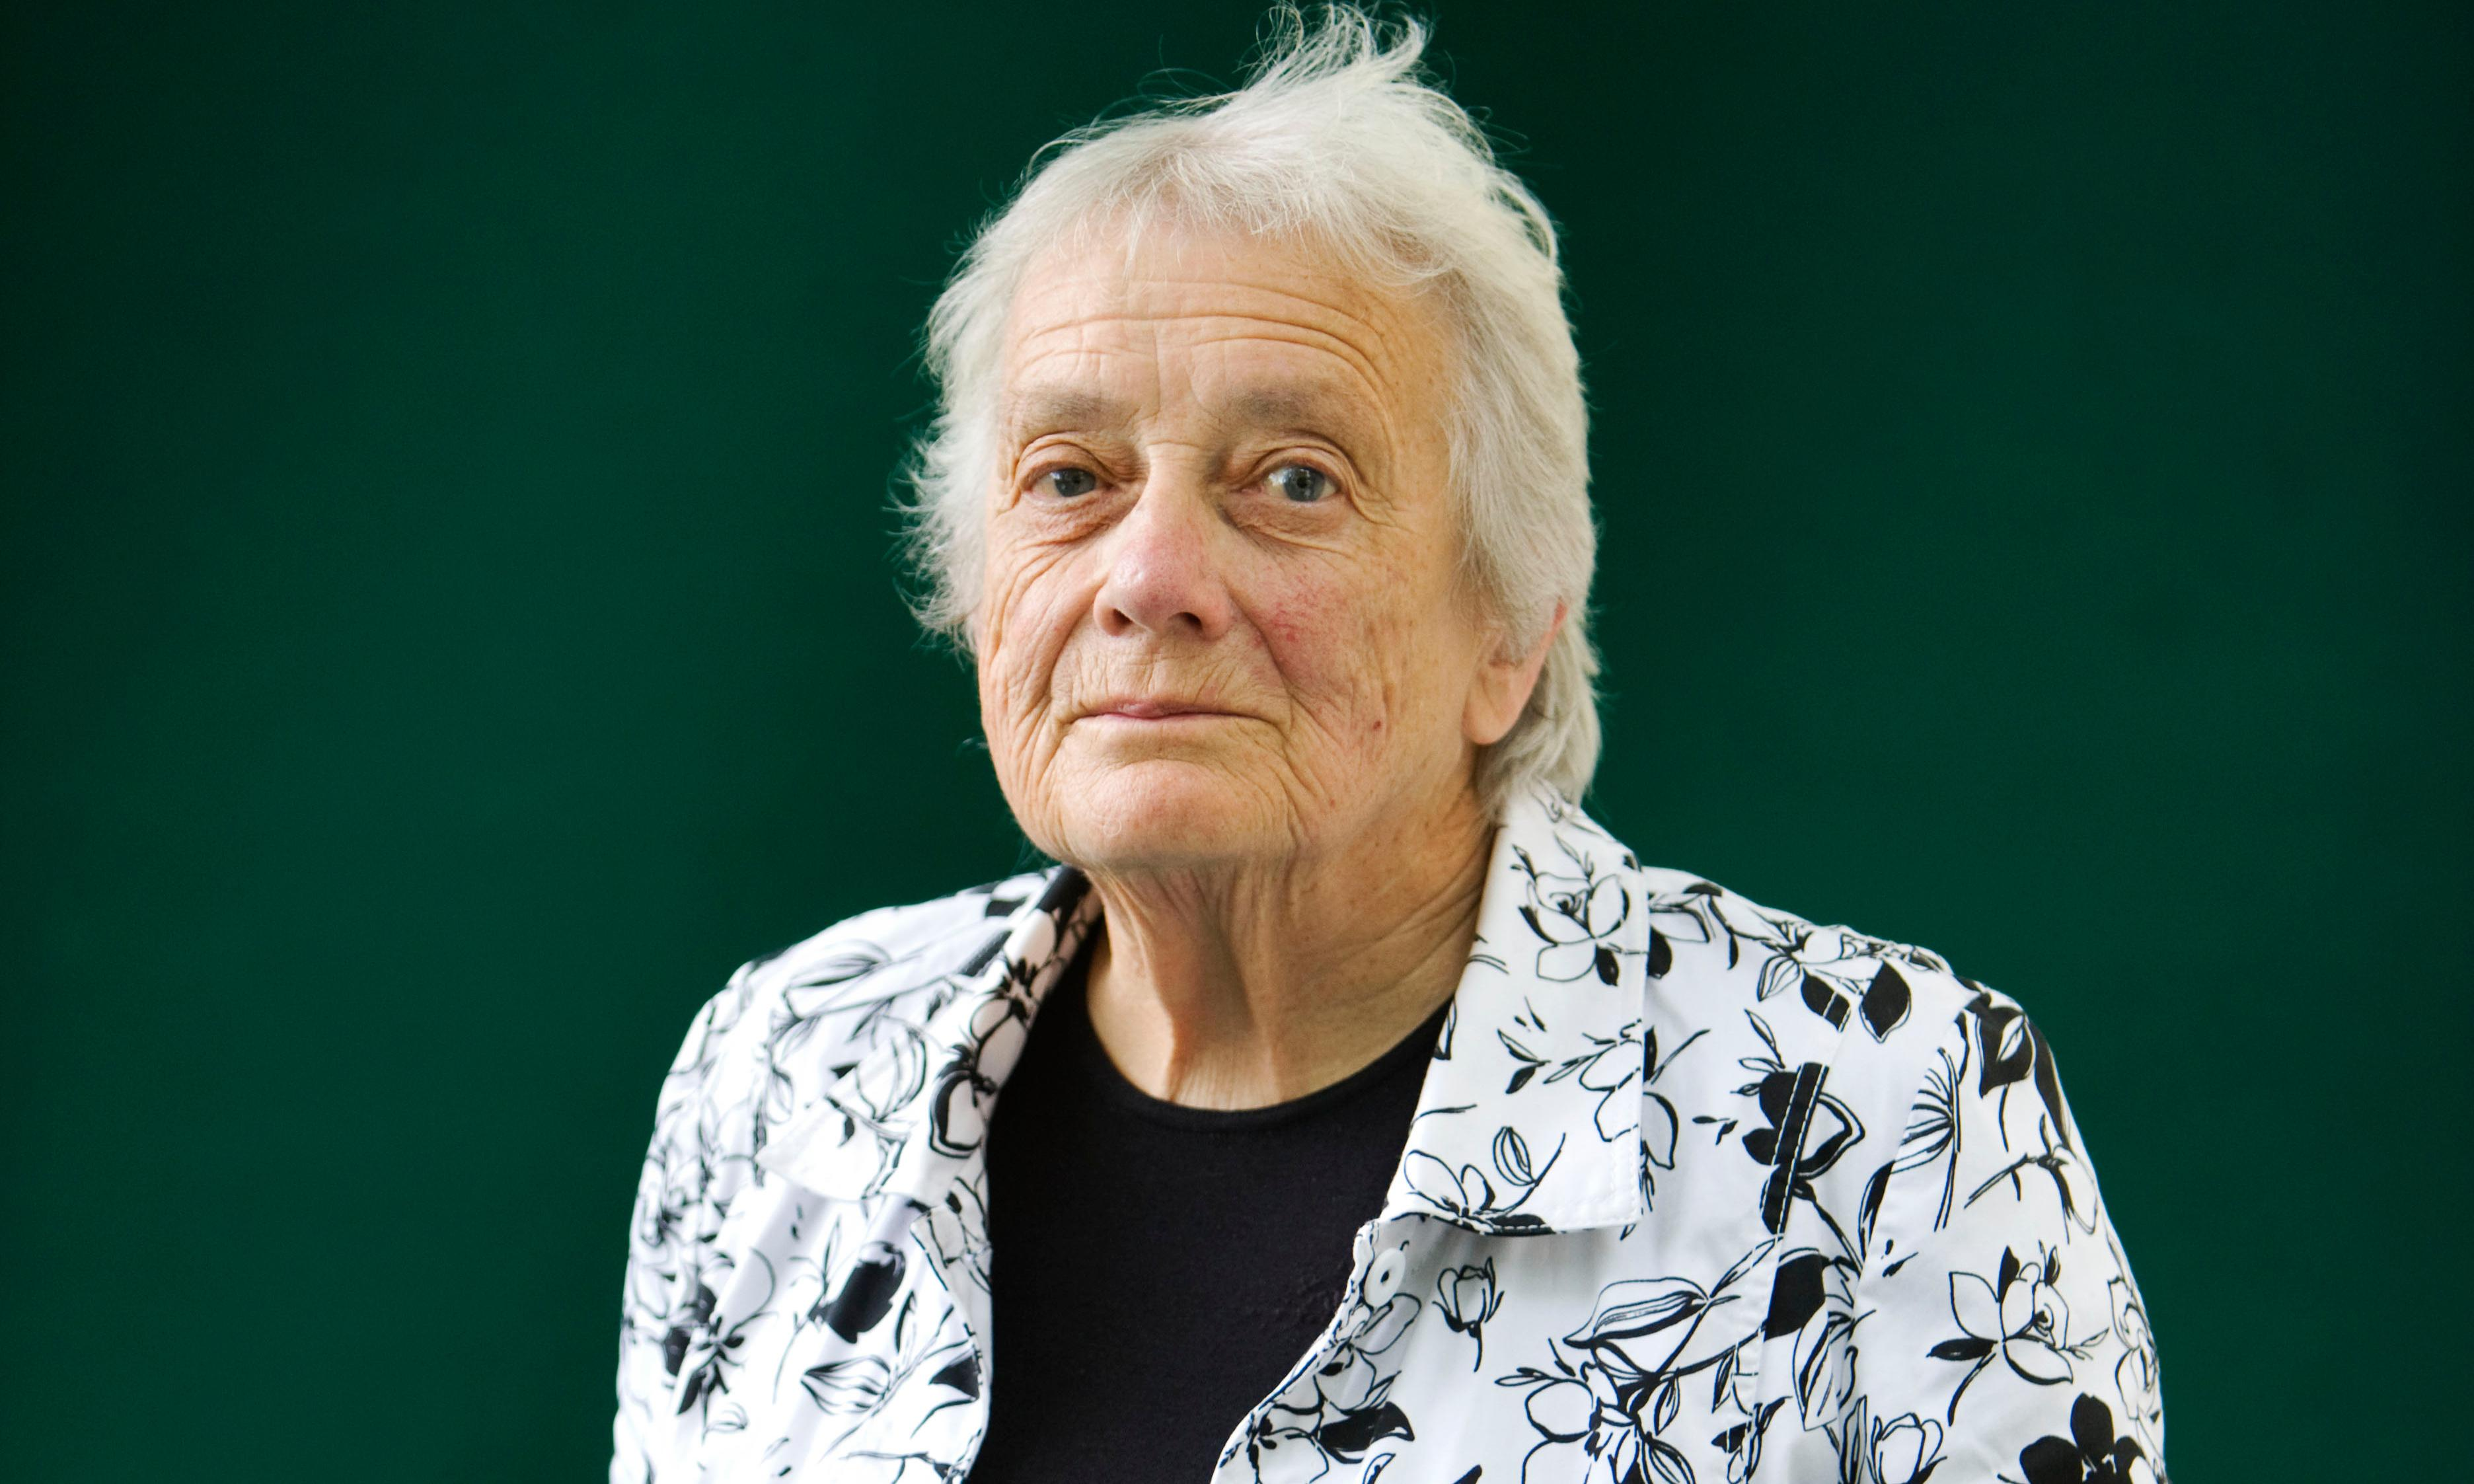 Mary Warnock embodied the best of Britain's ruling class before Thatcher